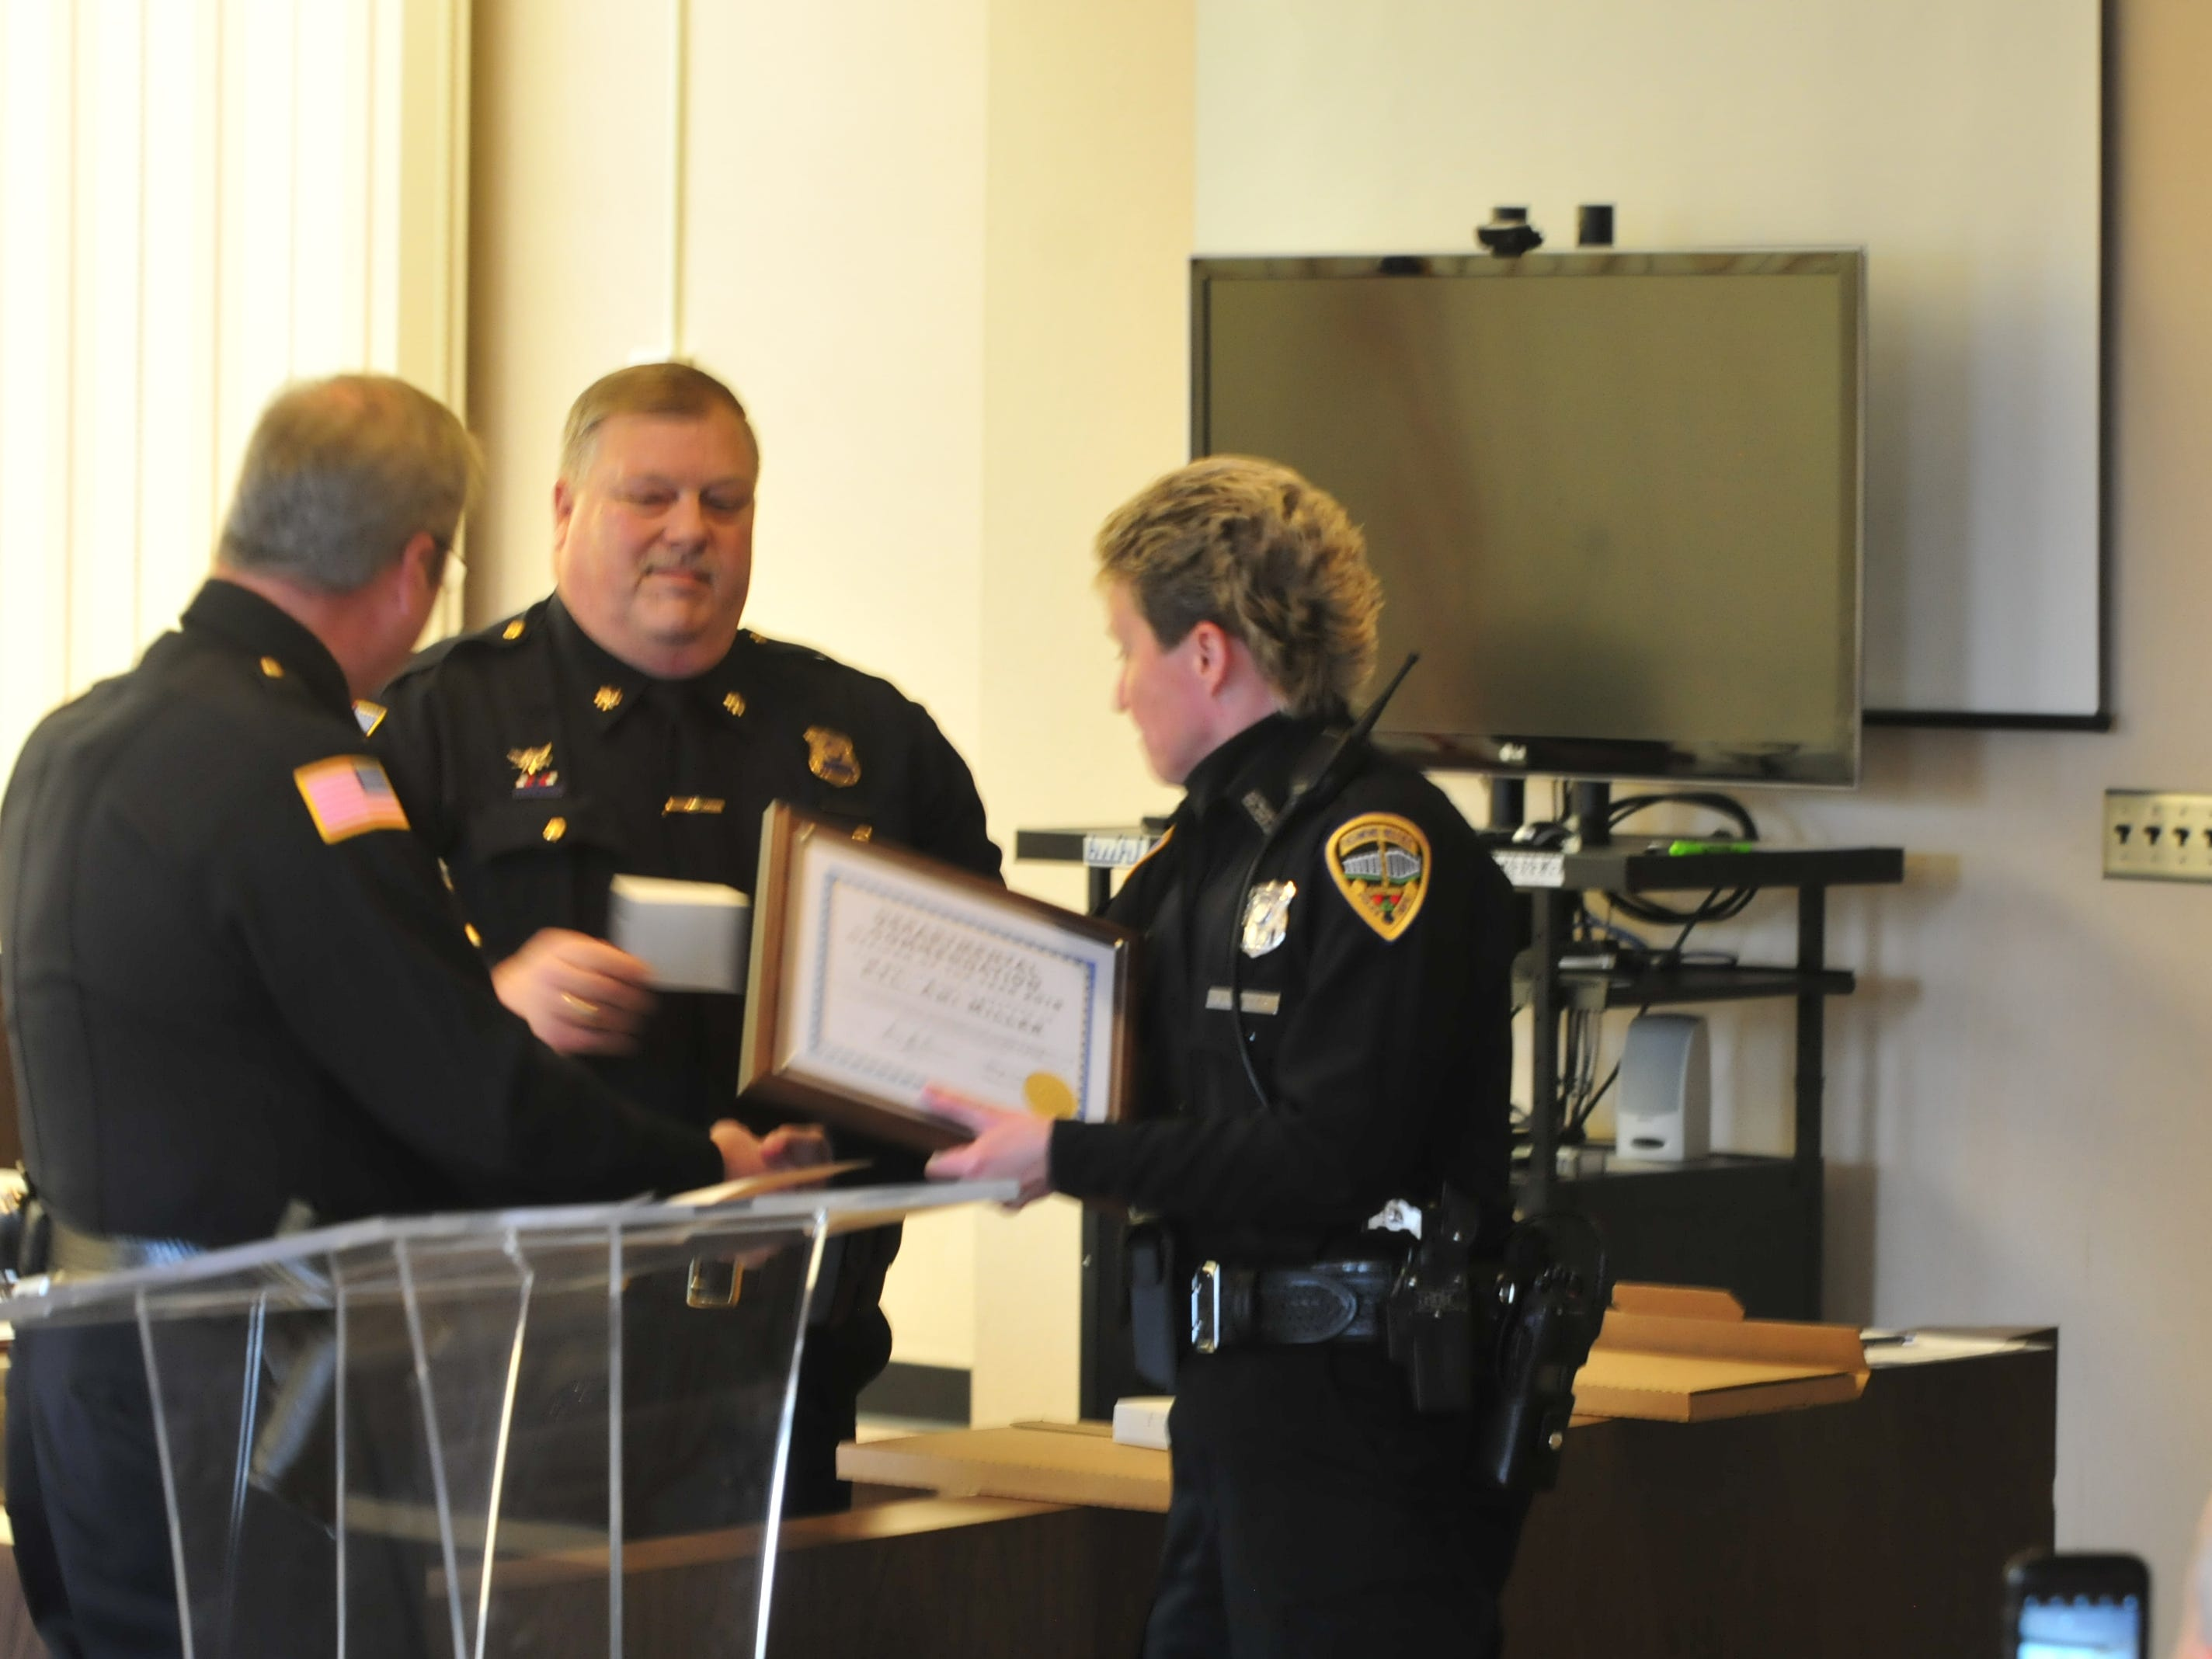 Officer Ami Miller receives her award as Officer of the Year from Chief Jim Branum and Major Mike Britt on Monday.